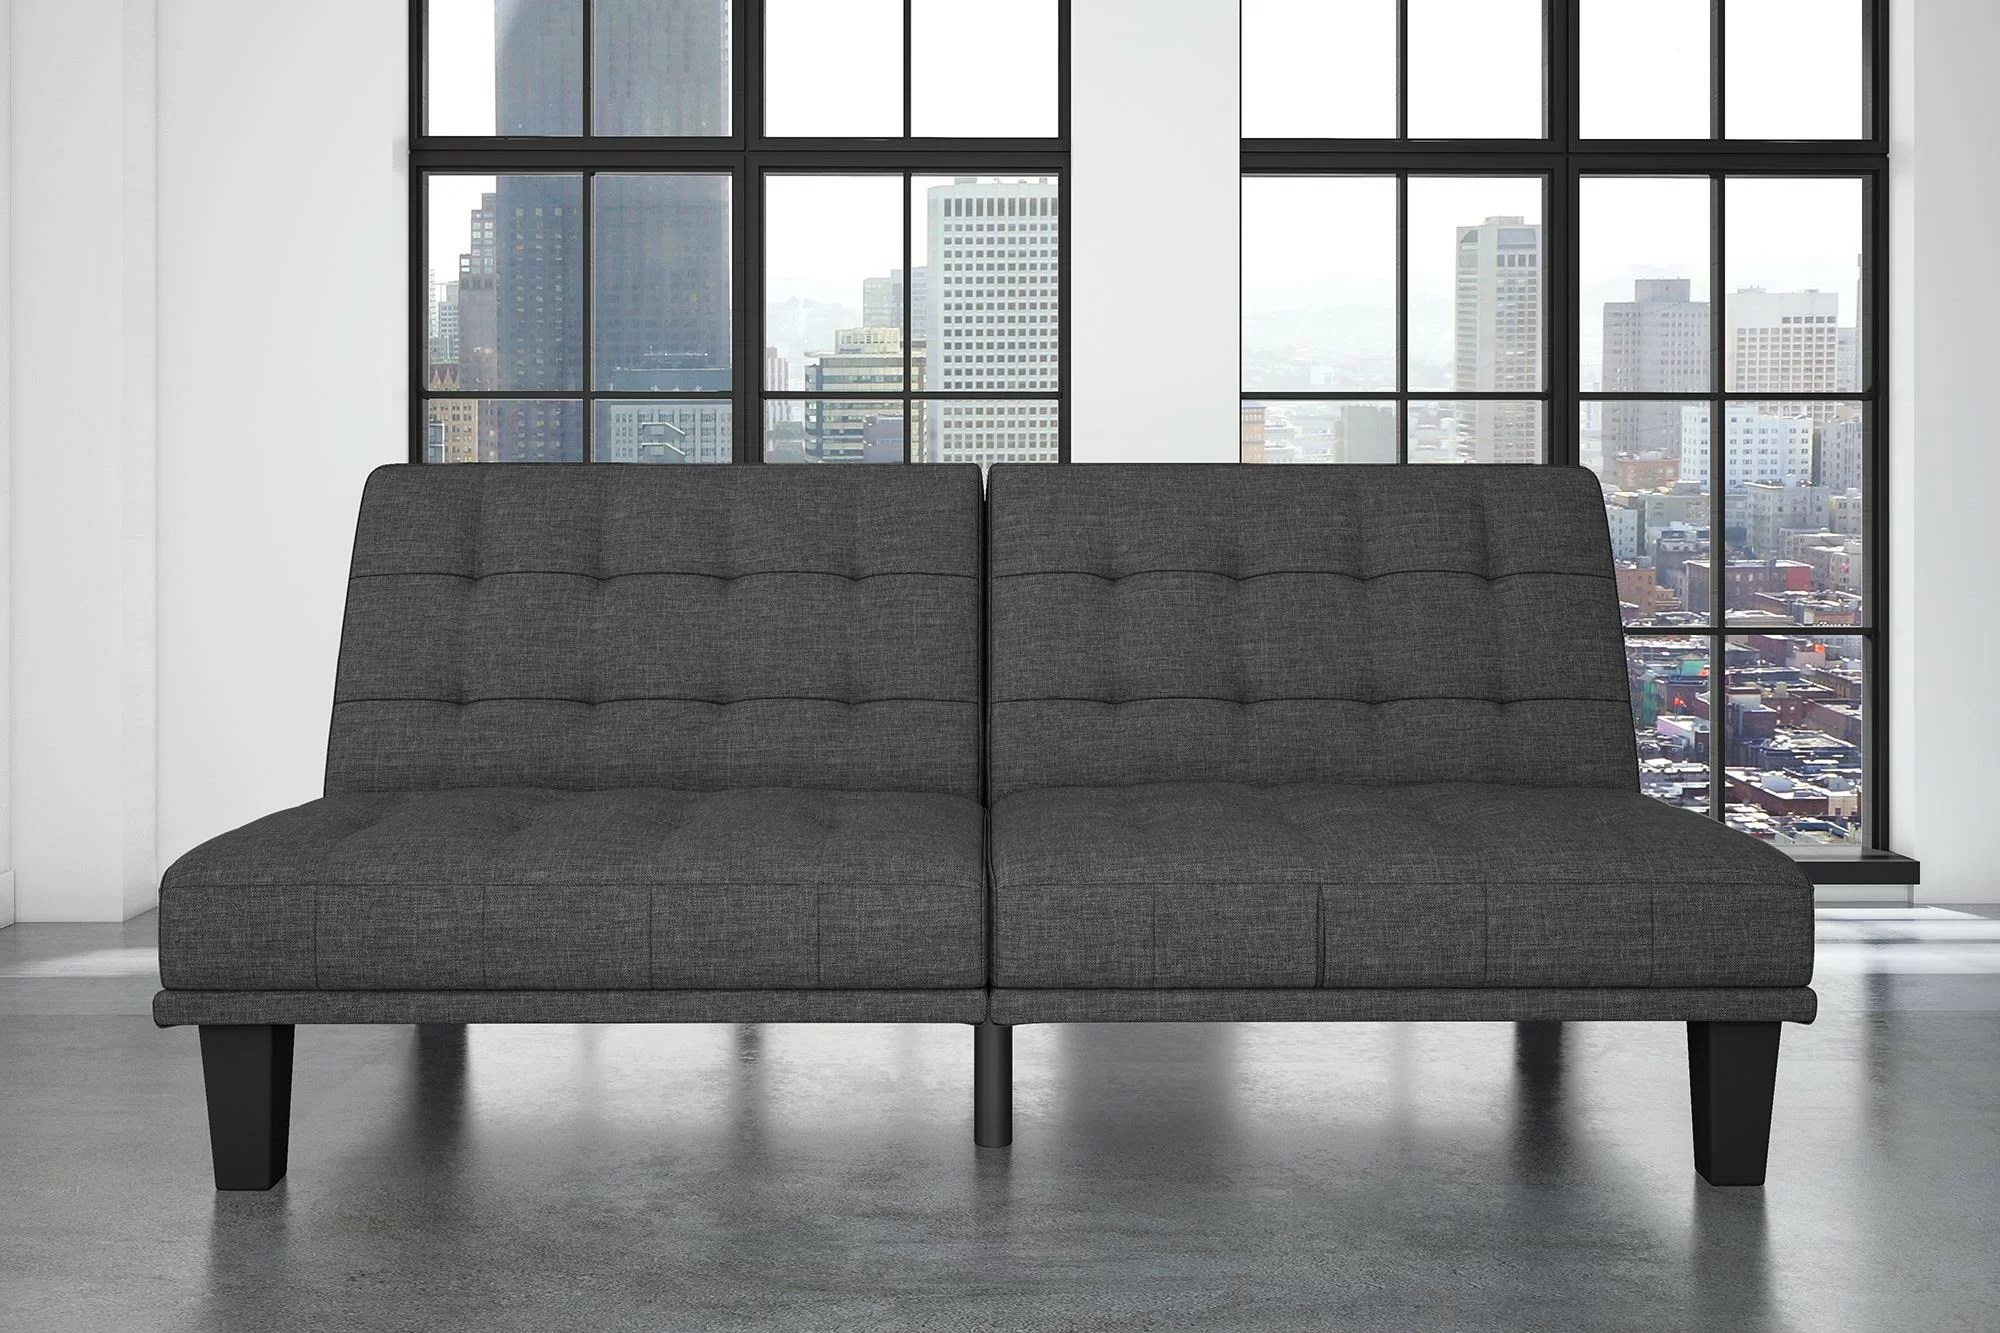 Best Places To Buy A Futon Haysi Futon Lounger Convertible Sofa